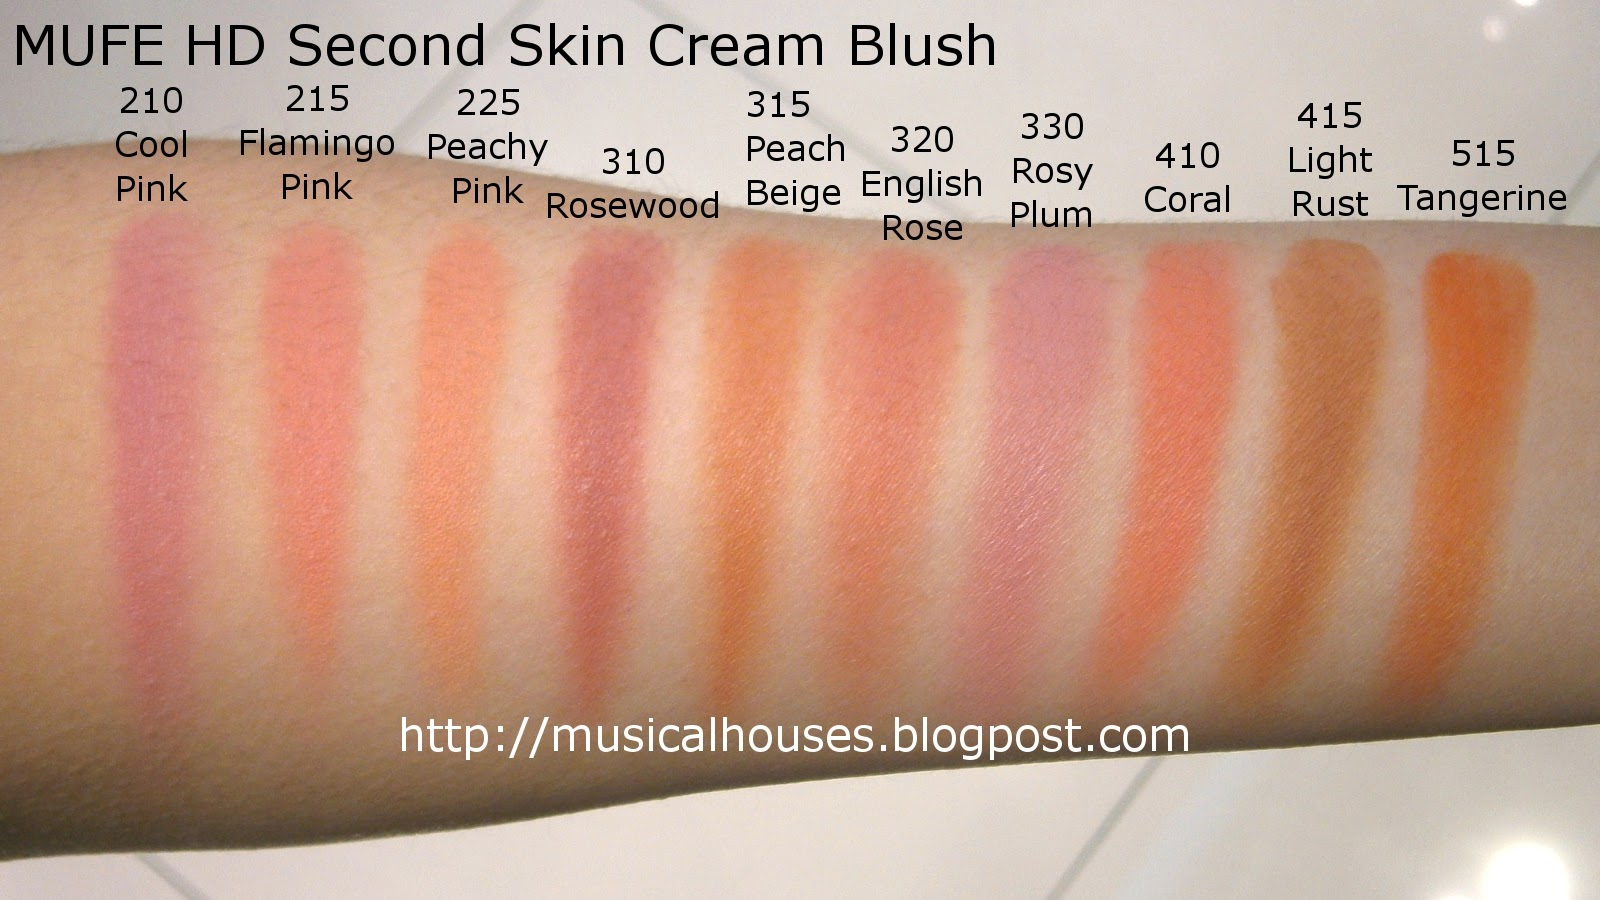 MUFE HD Blush Second Skin Cream Blush Swatches! - of Faces and Fingers